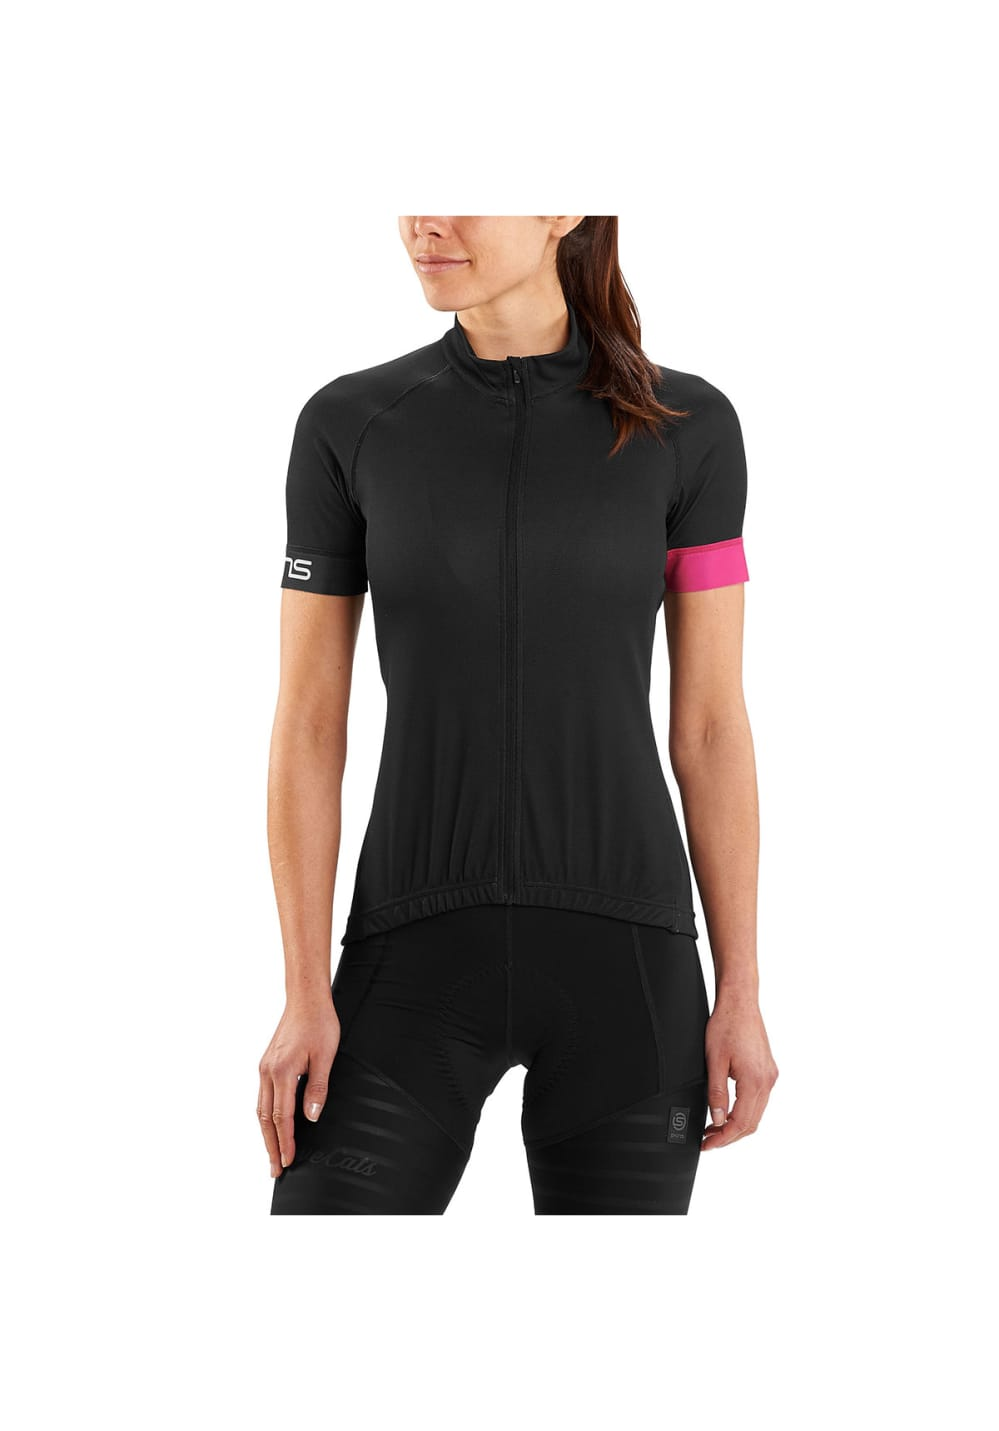 Skins Cycle Jersey Classic Short Sleeve - Radtr...